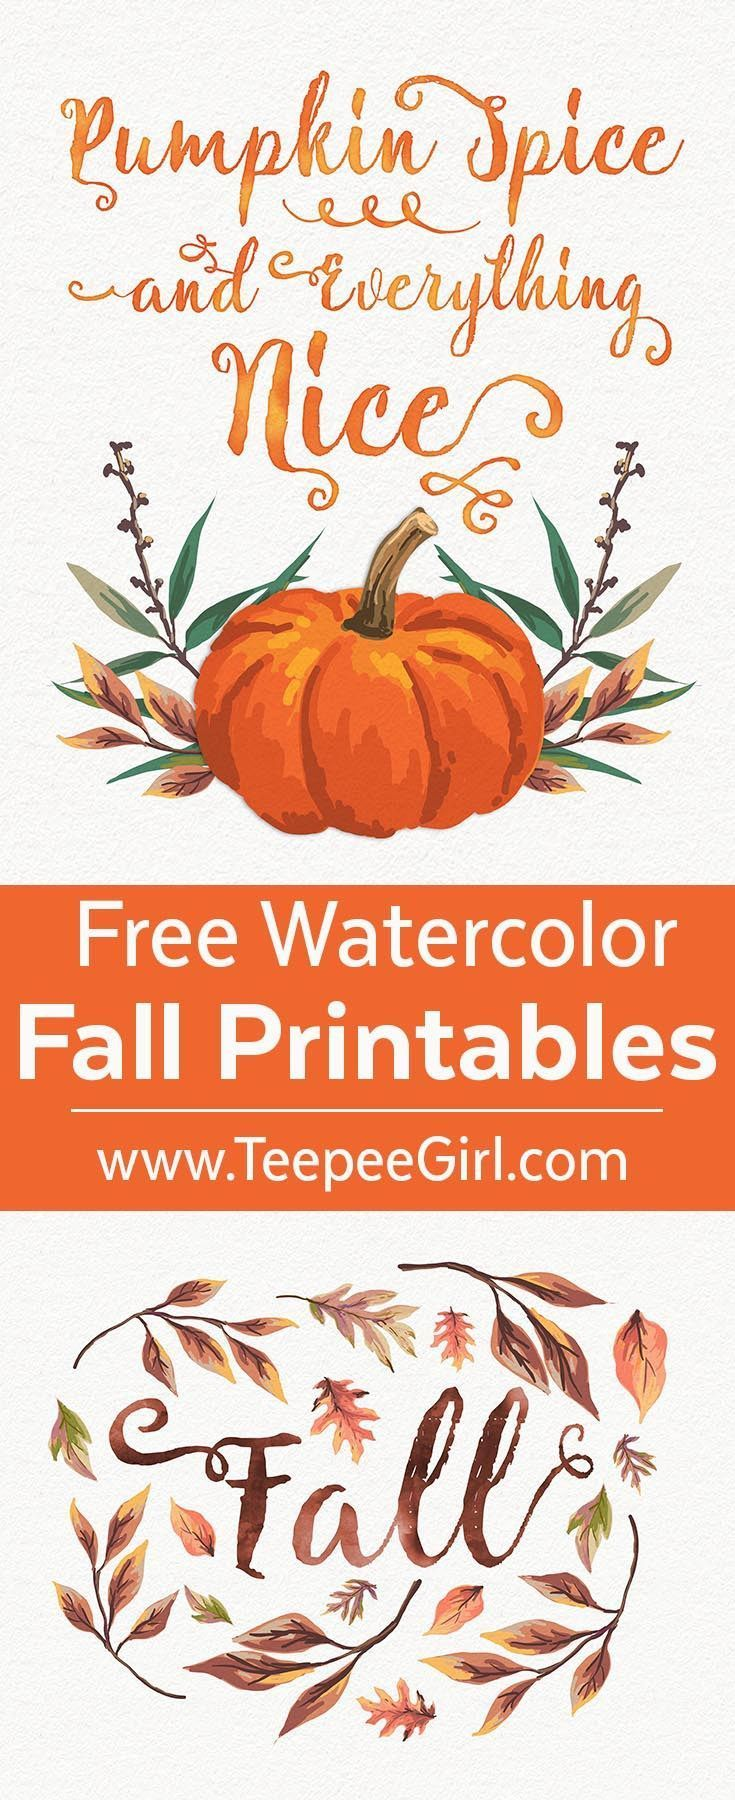 It's just a picture of Accomplished Printable Fall Decorations